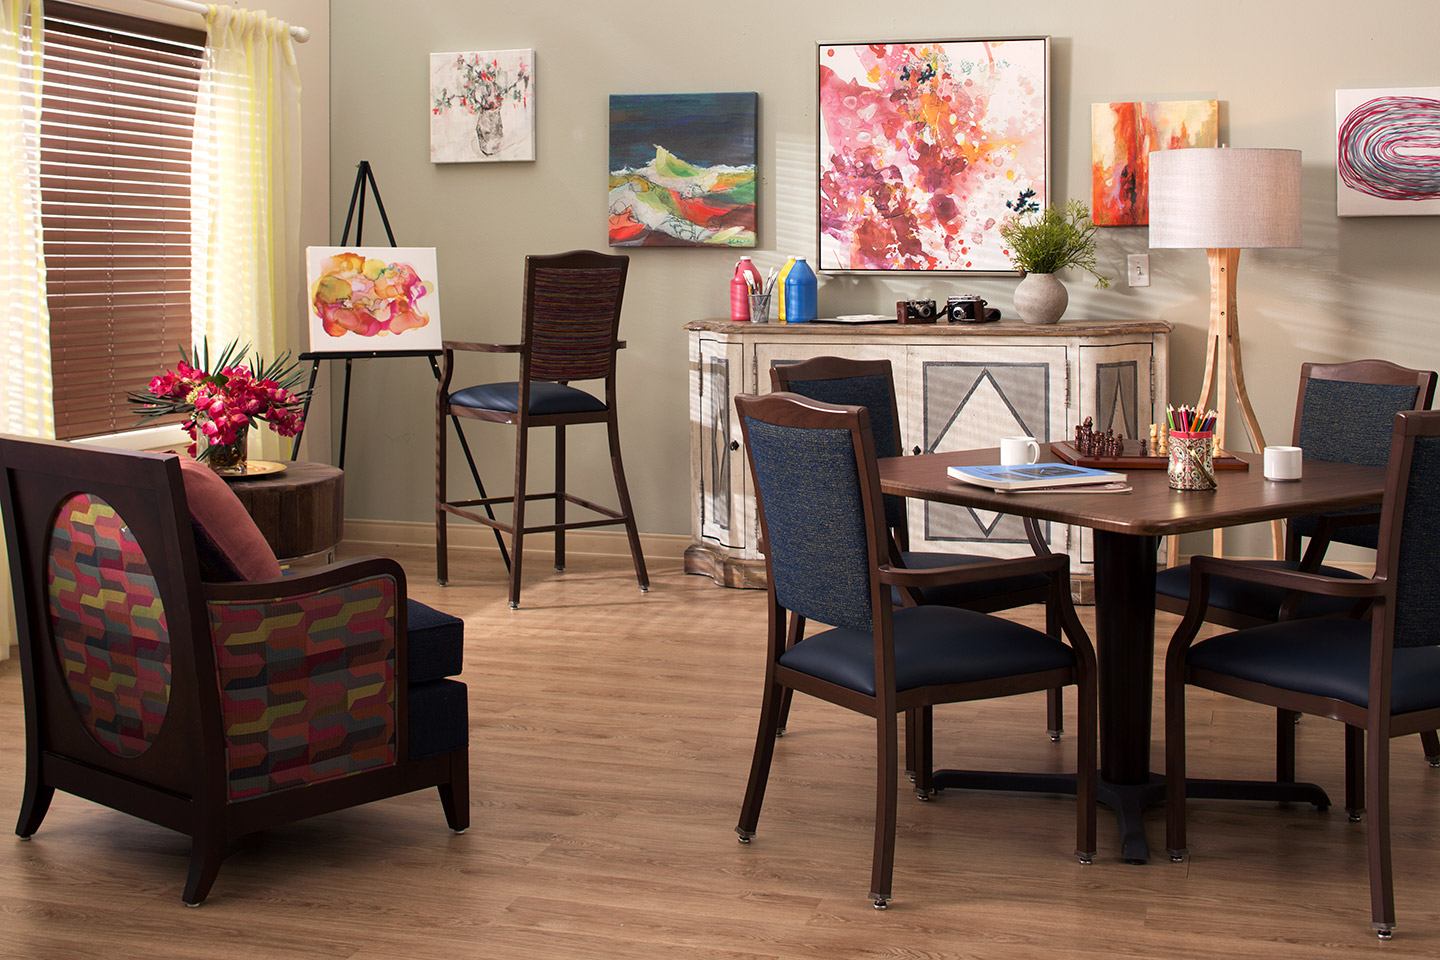 Art room for senior living